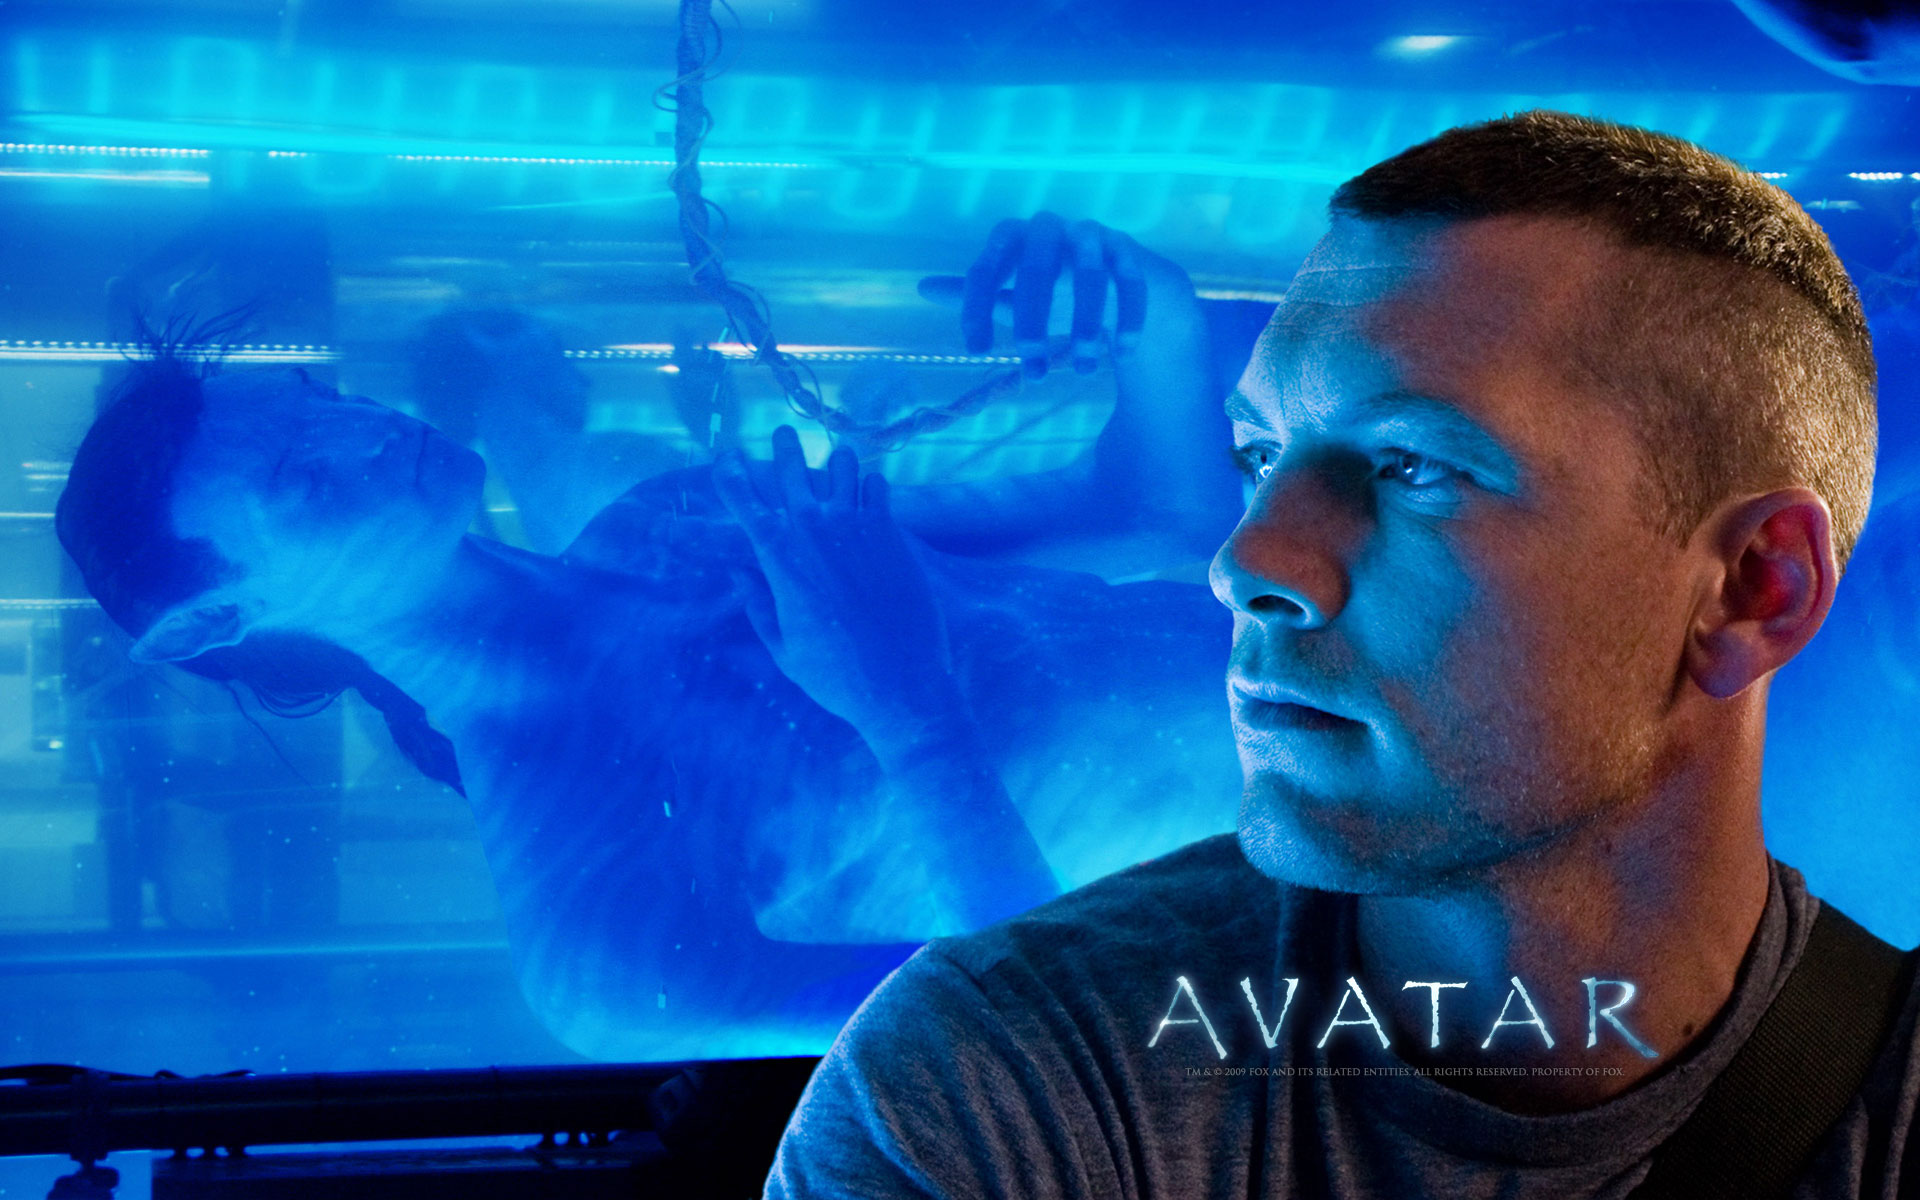 avatar wallpapers photos and desktop backgrounds up to 8k